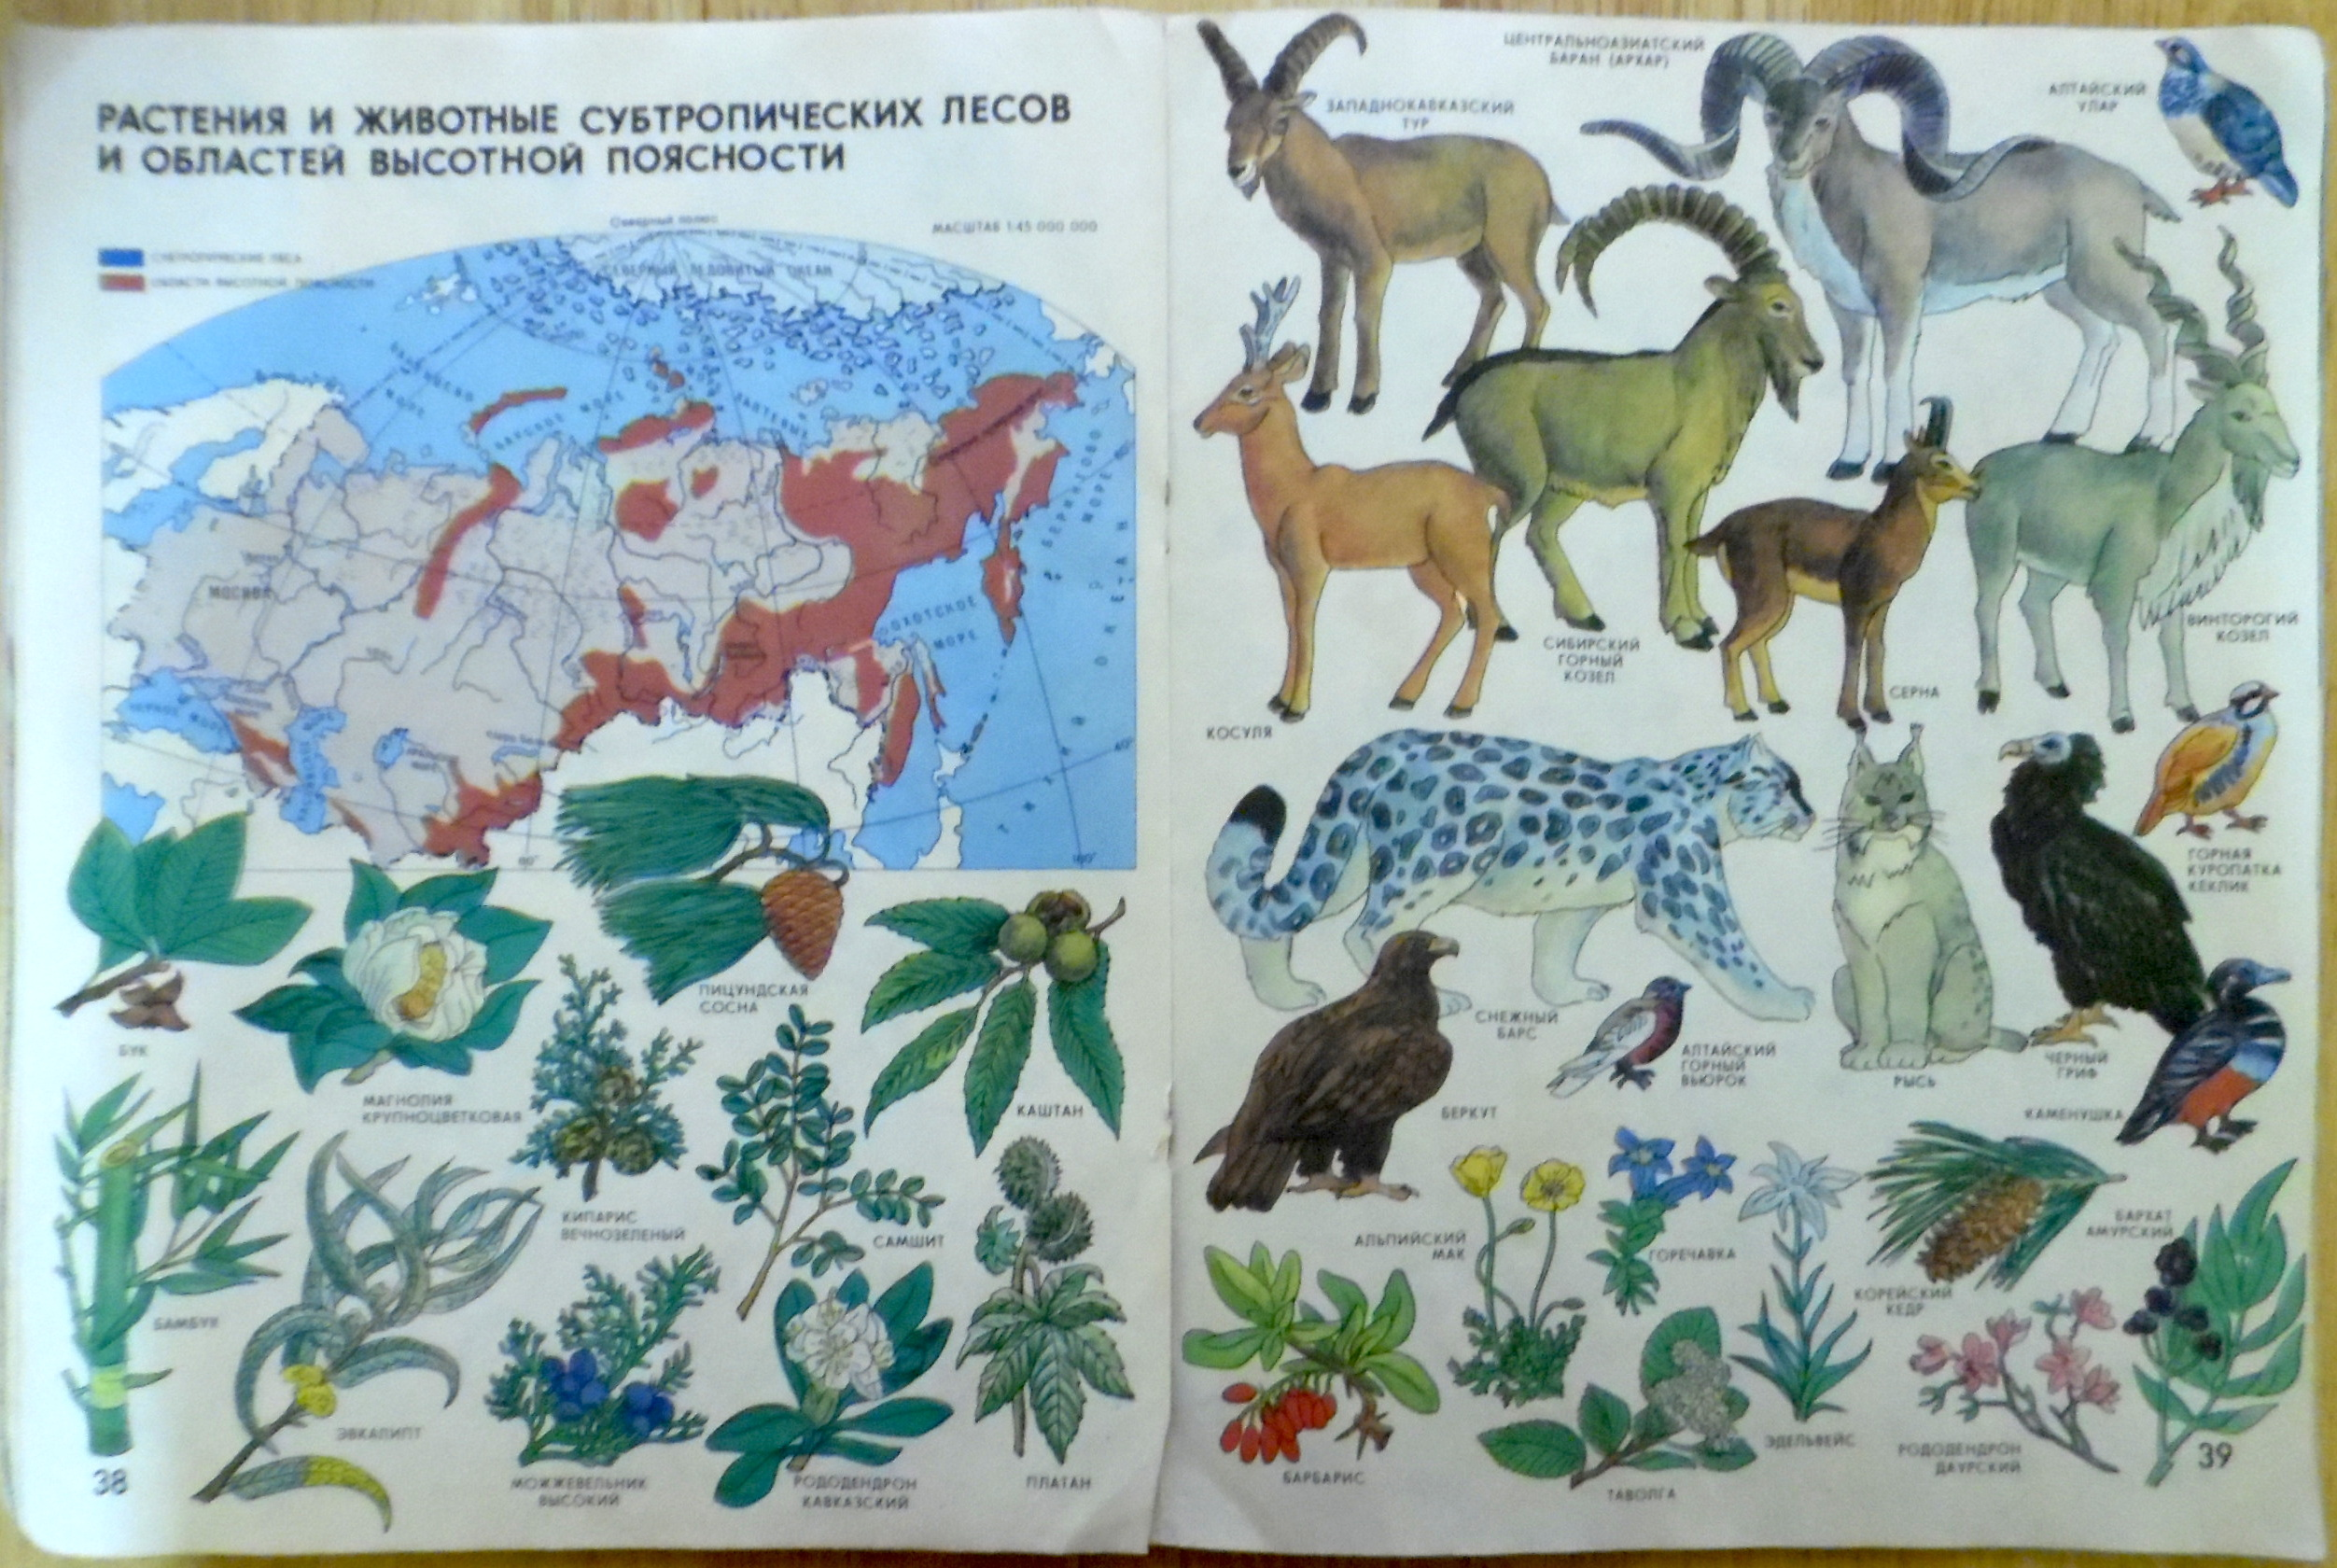 Plants and Animals of Subtropical Forests and Regions of High Elevation